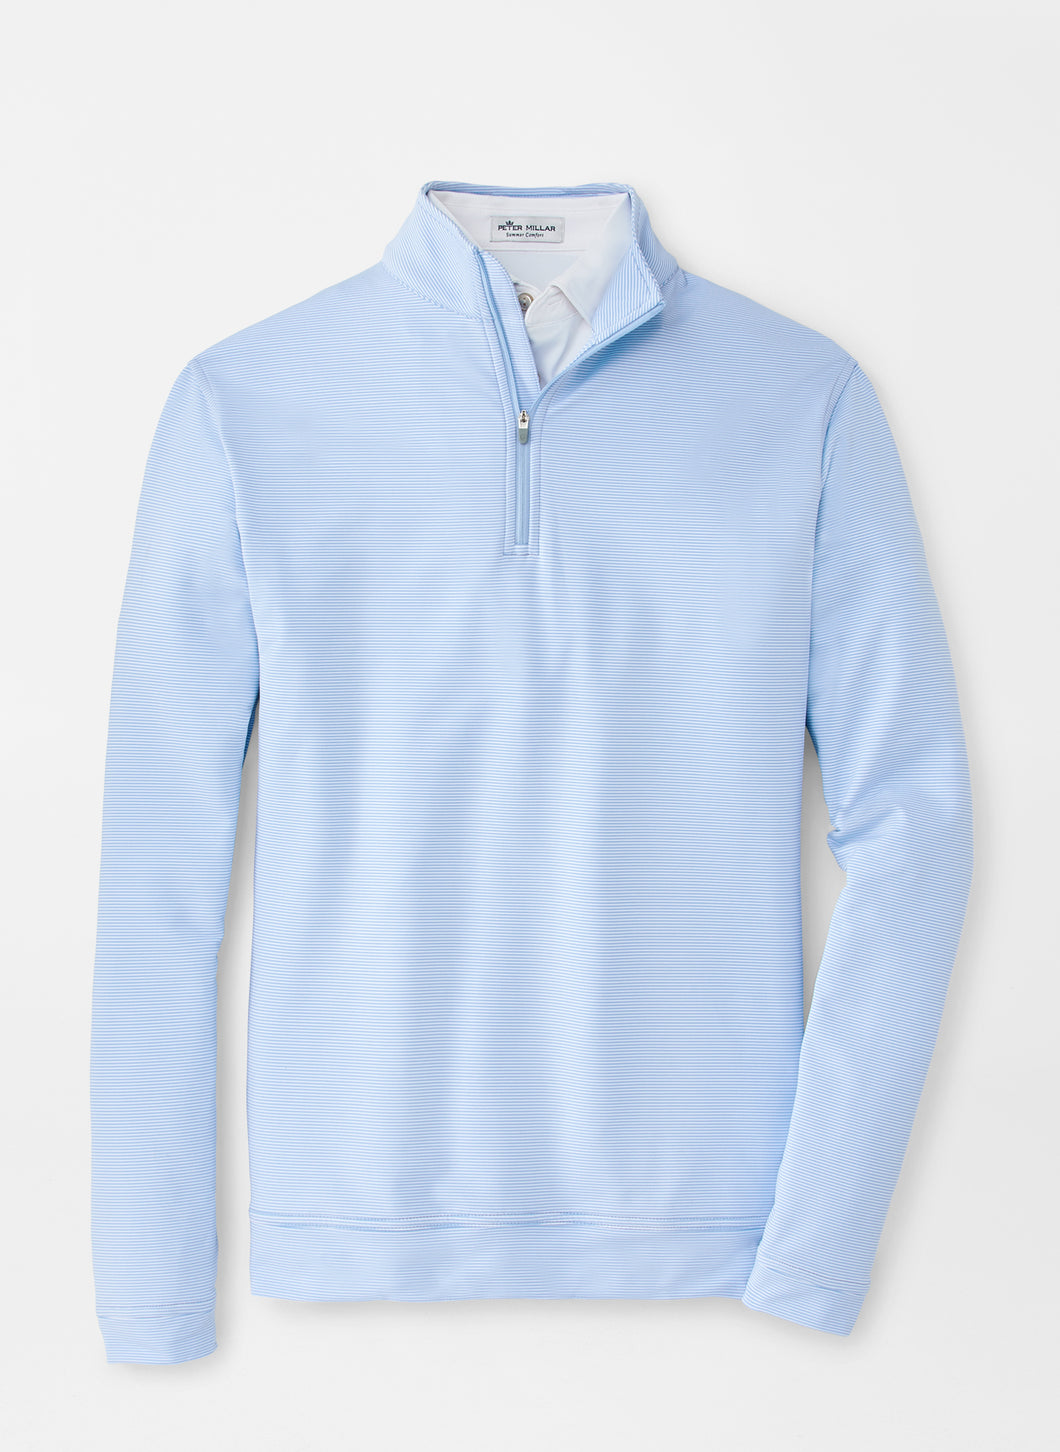 Peter Millar Perth Mini-Stripe Stretch Loop Terry Quarter-Zip in Cottage Blue/White